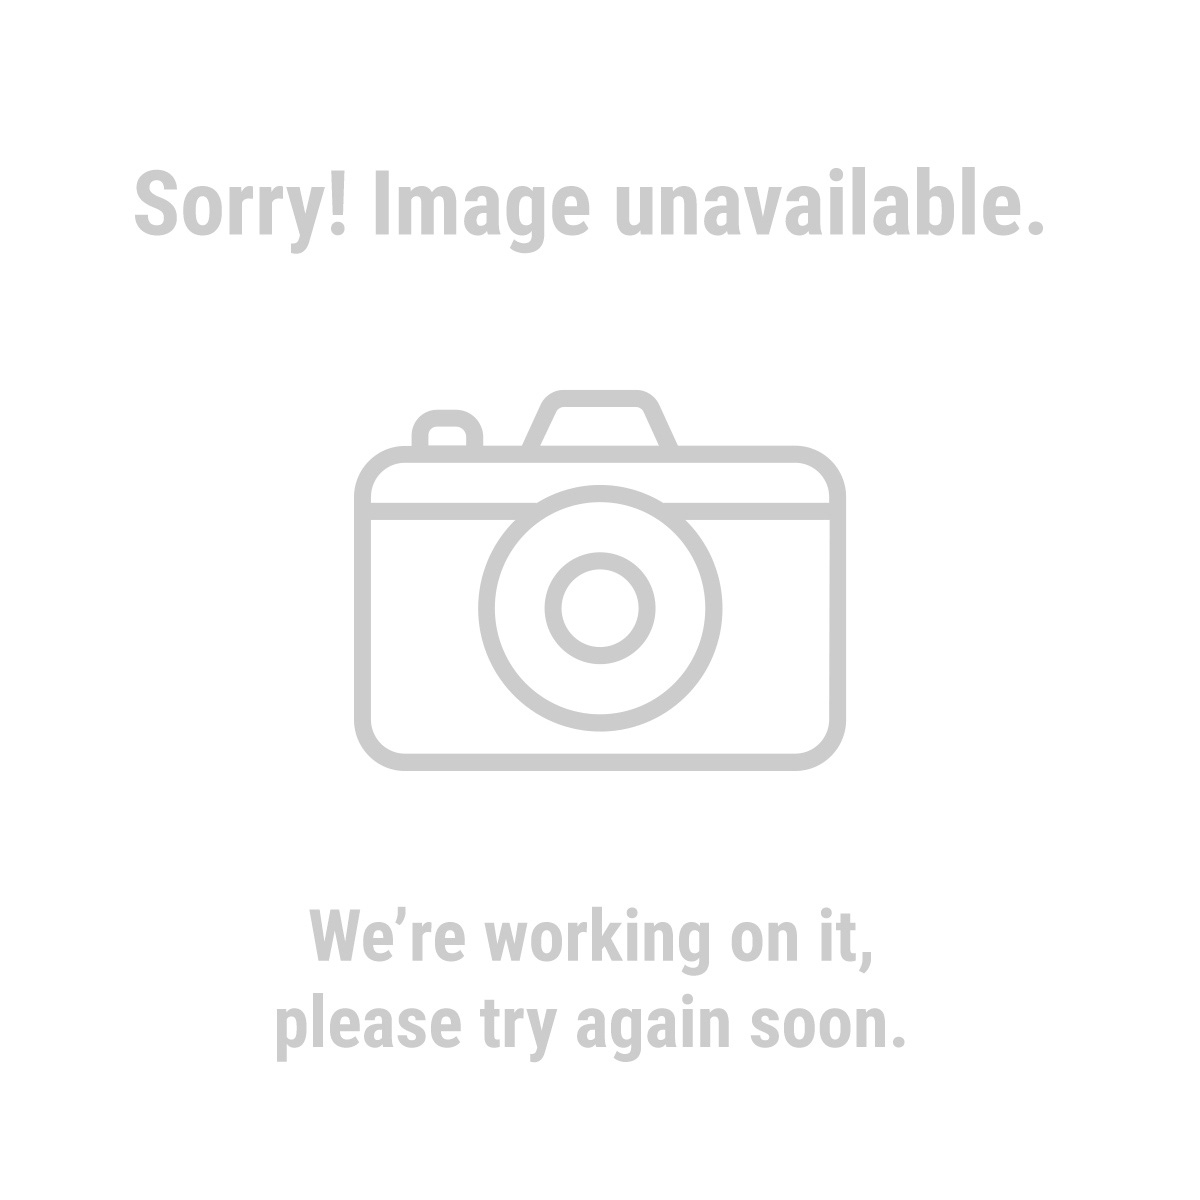 Krause & Becker 62612 3 in. Professional Paint Brush